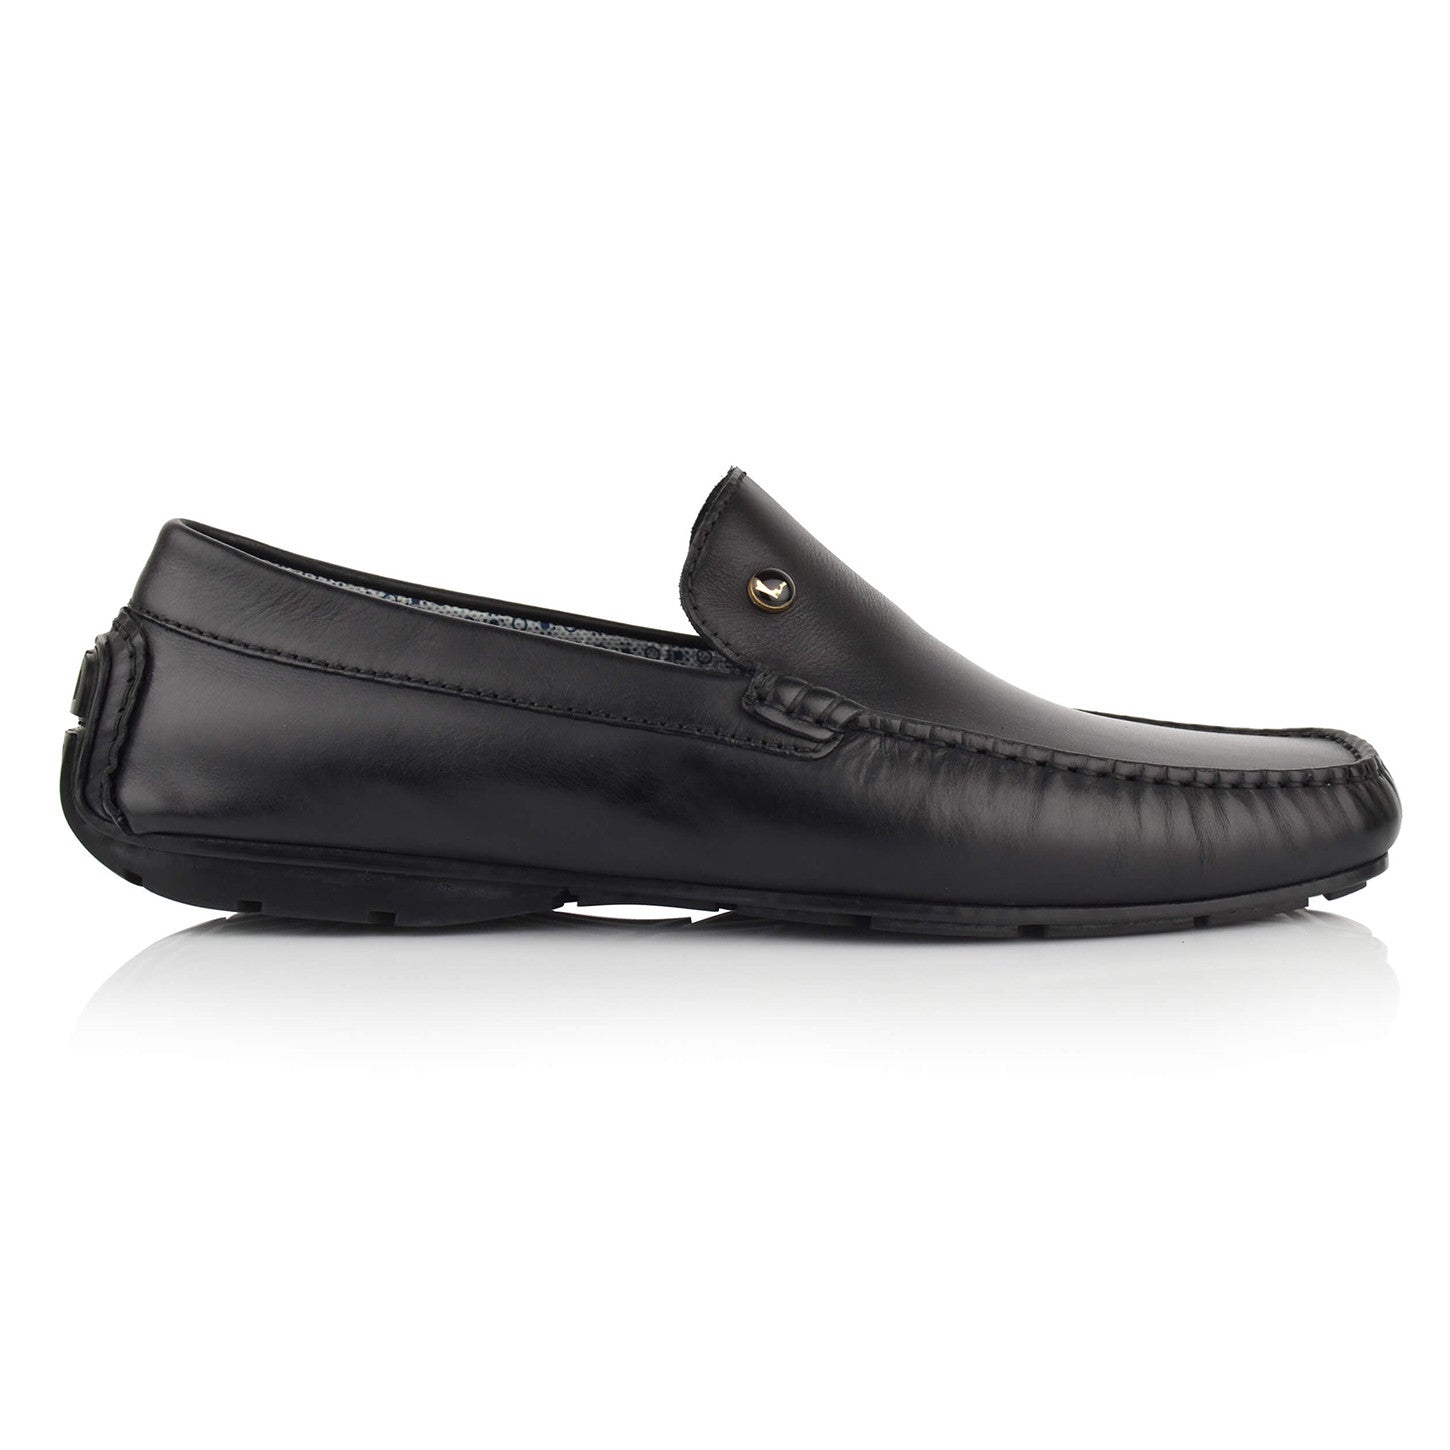 LM500 - Language Aecadian Men's Casual Black Drivers